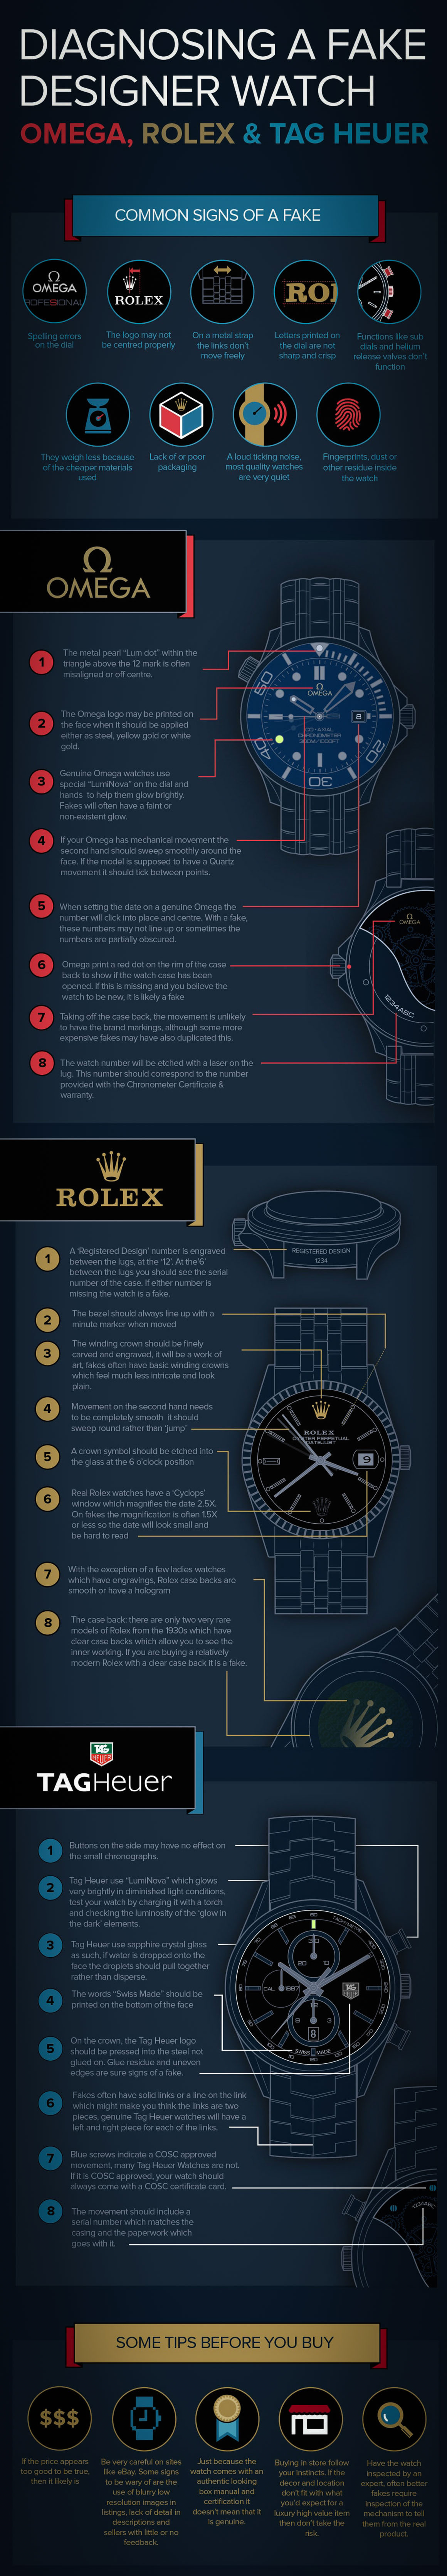 Infographie-Fausse-Rolex-Omega-Tag-Heuer-2